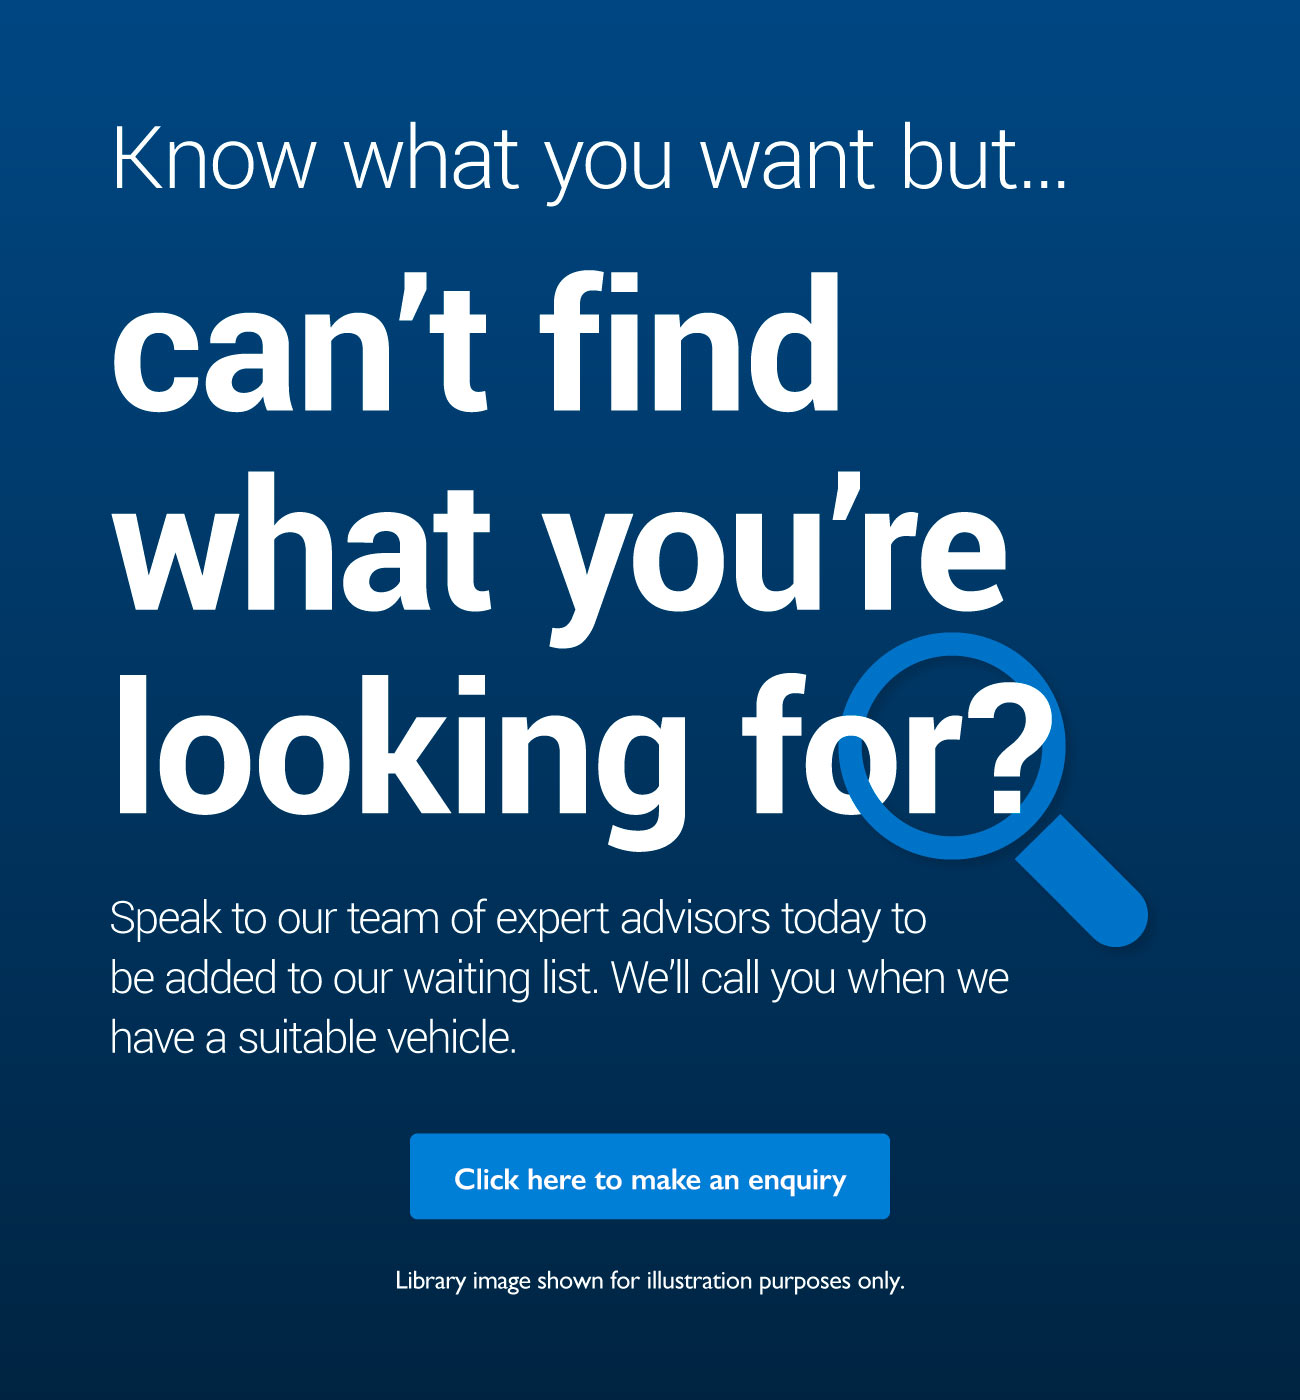 Cant find what your looking for?